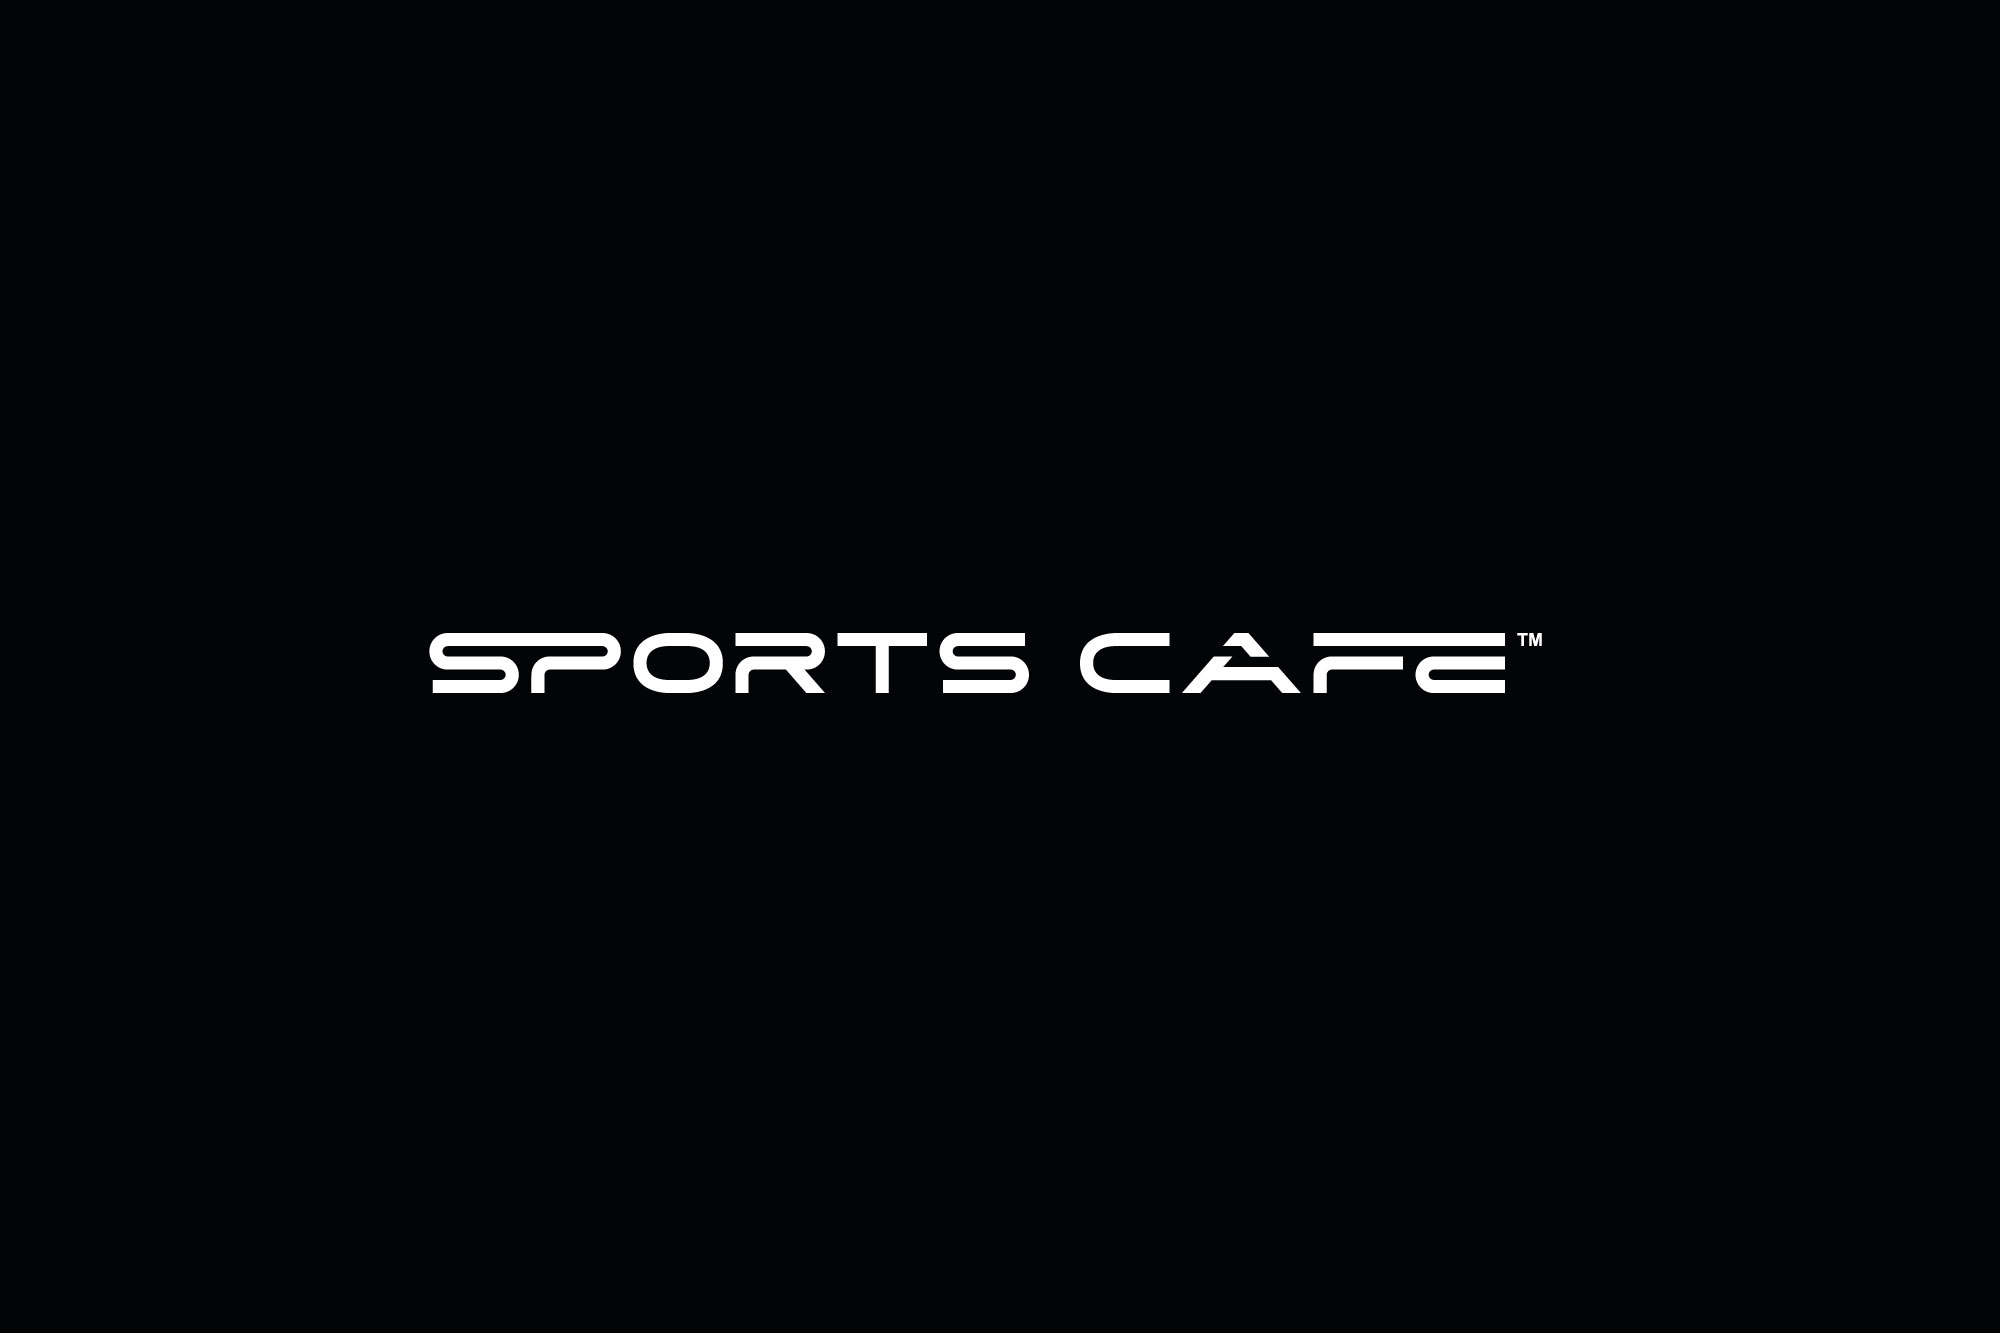 sportscafe-by-yastudio-20